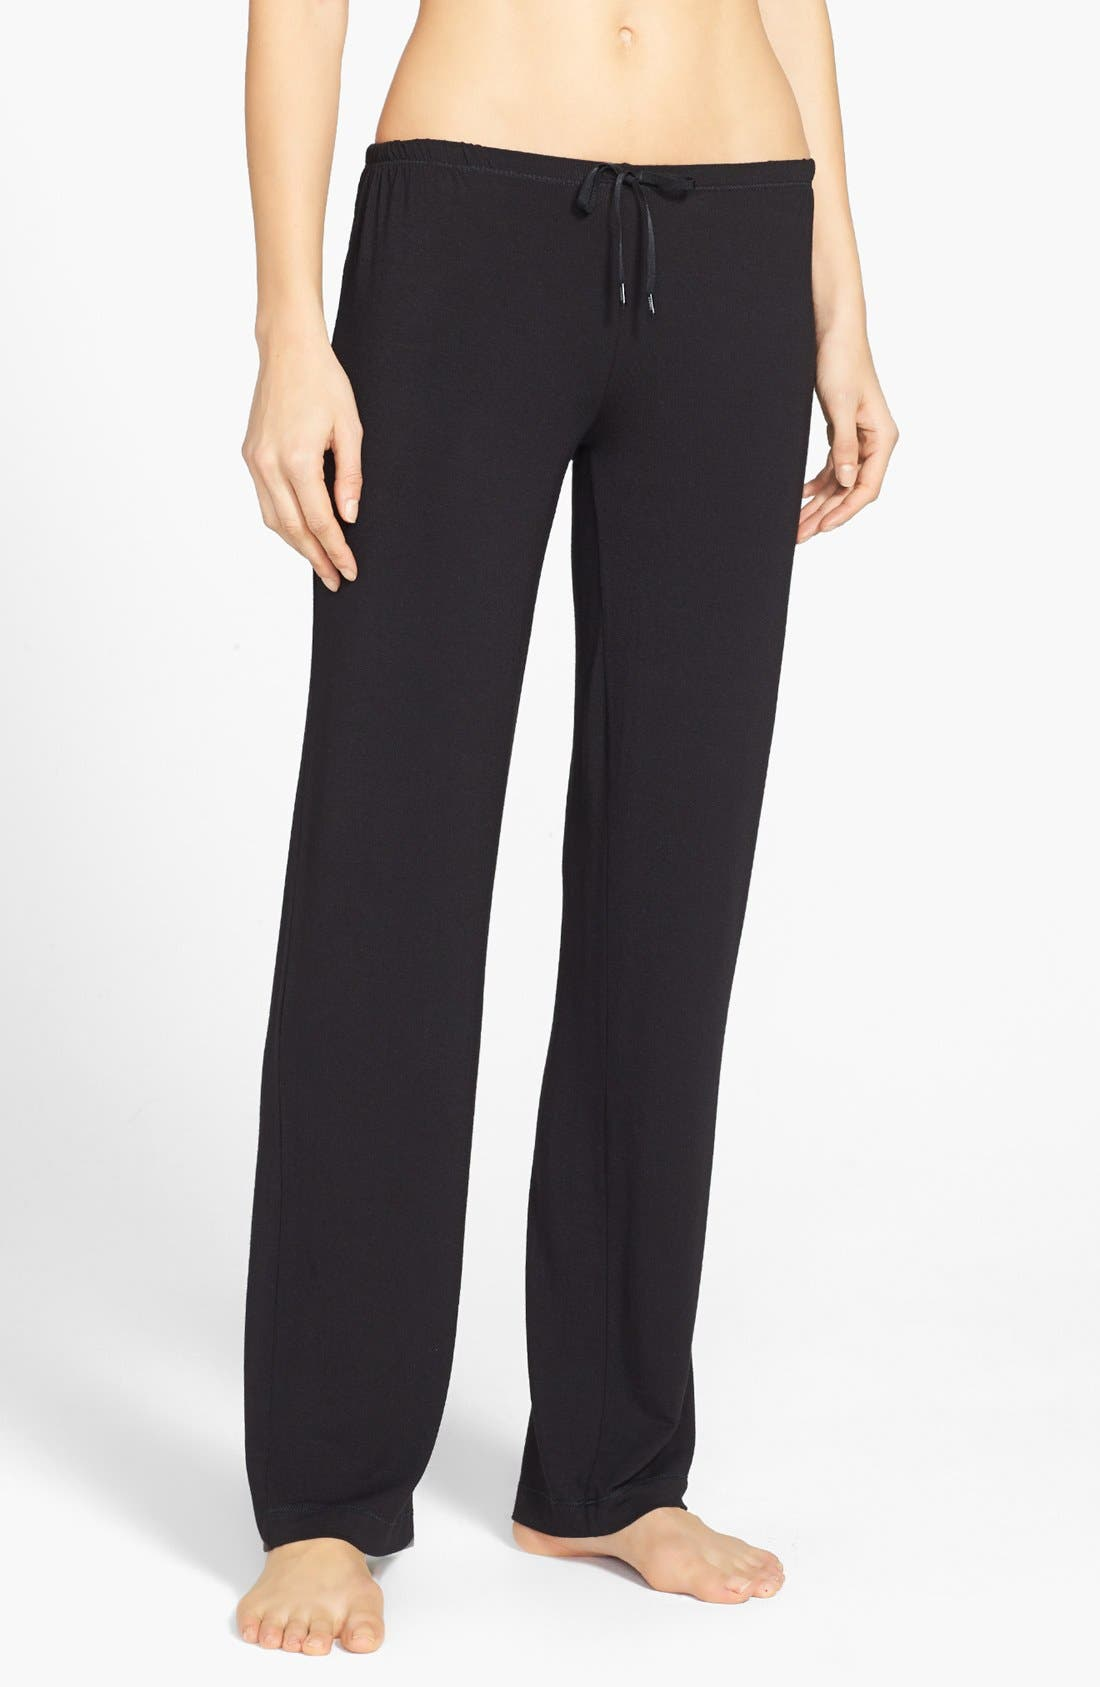 'City Essentials' Pants,                         Main,                         color, Black